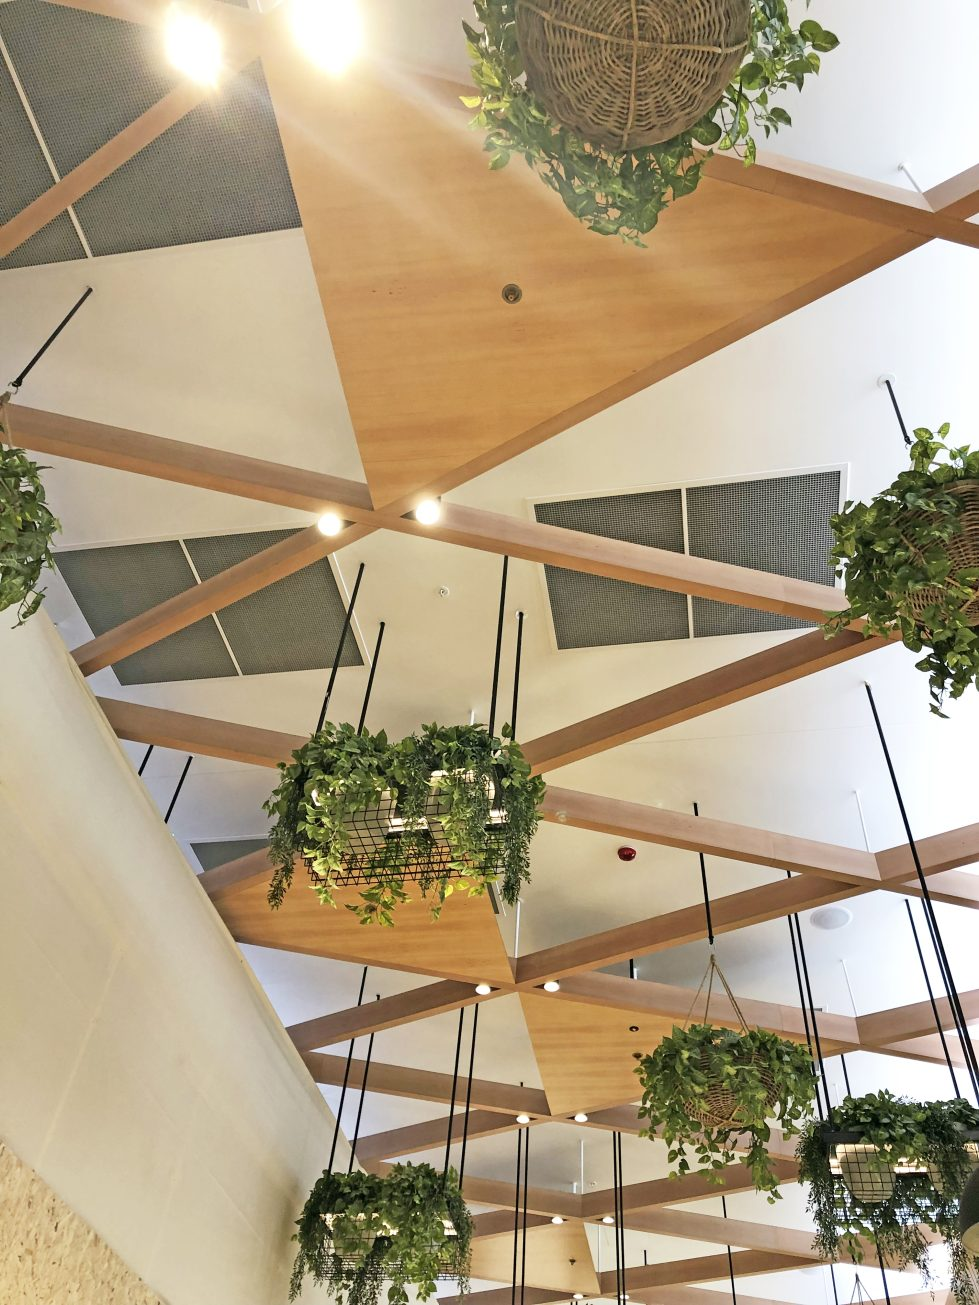 design clarity, hanging plants from ceiling, timber structure, baskets with plants, featured design, cost-effective solution, nice interior for high ceilings